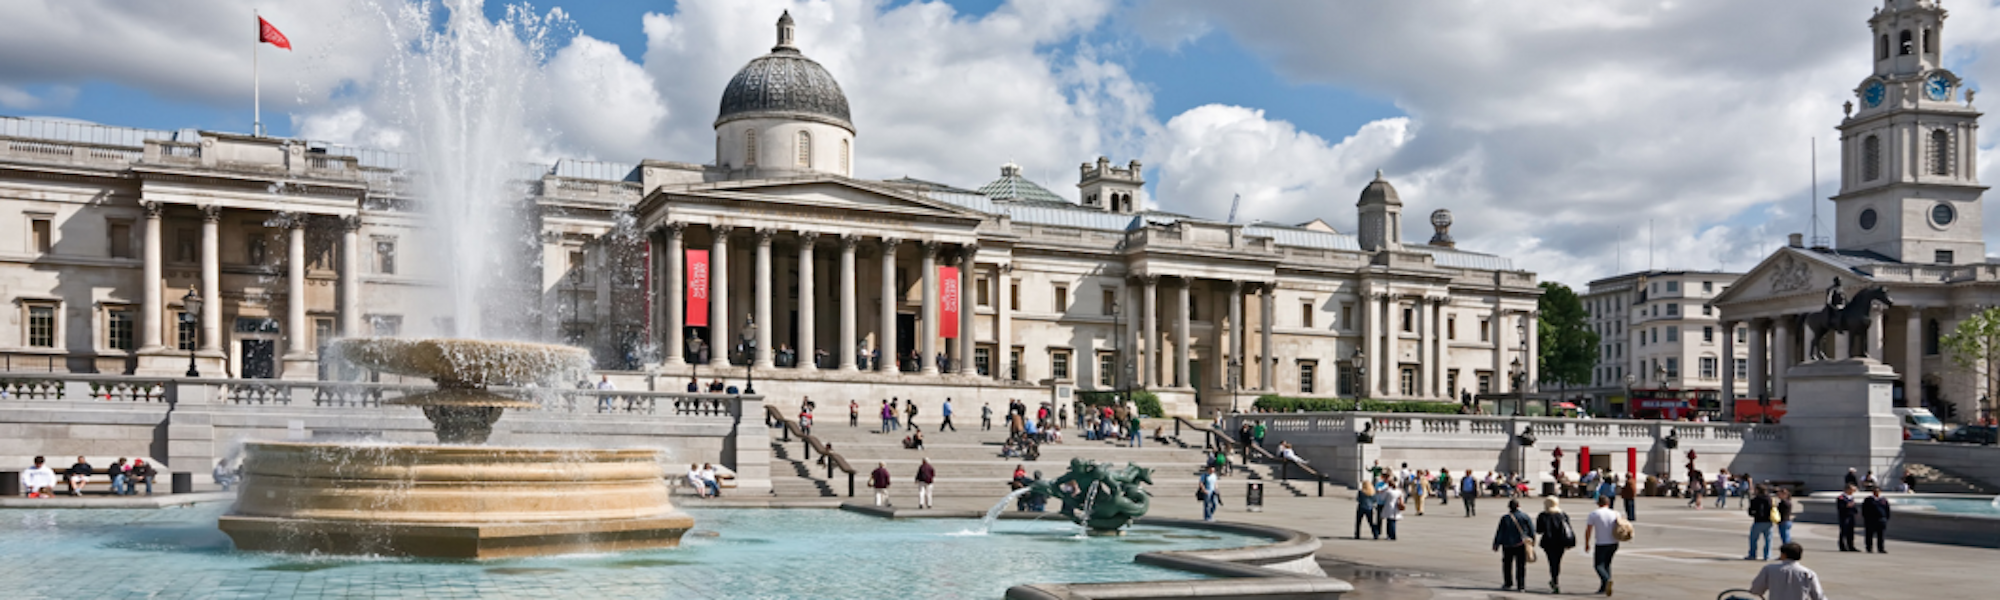 Rent a place in Trafalgar Square